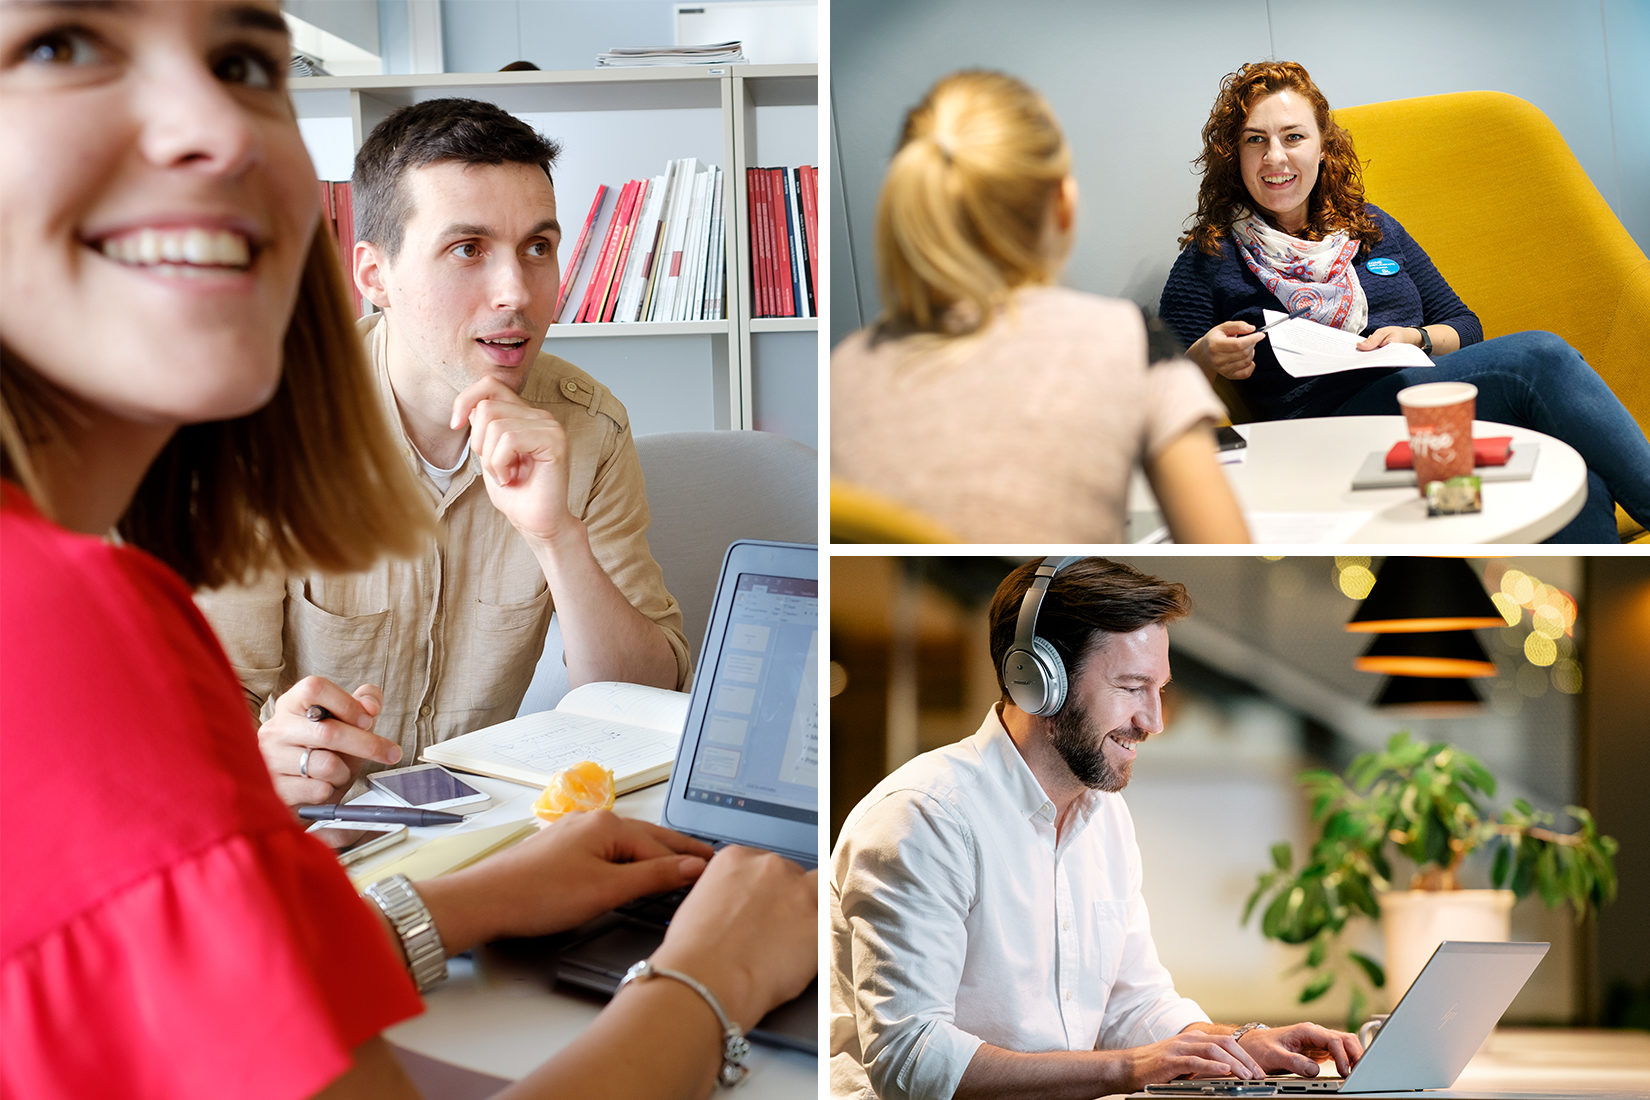 A photo collage showing men and women conversating and in front of a computer.